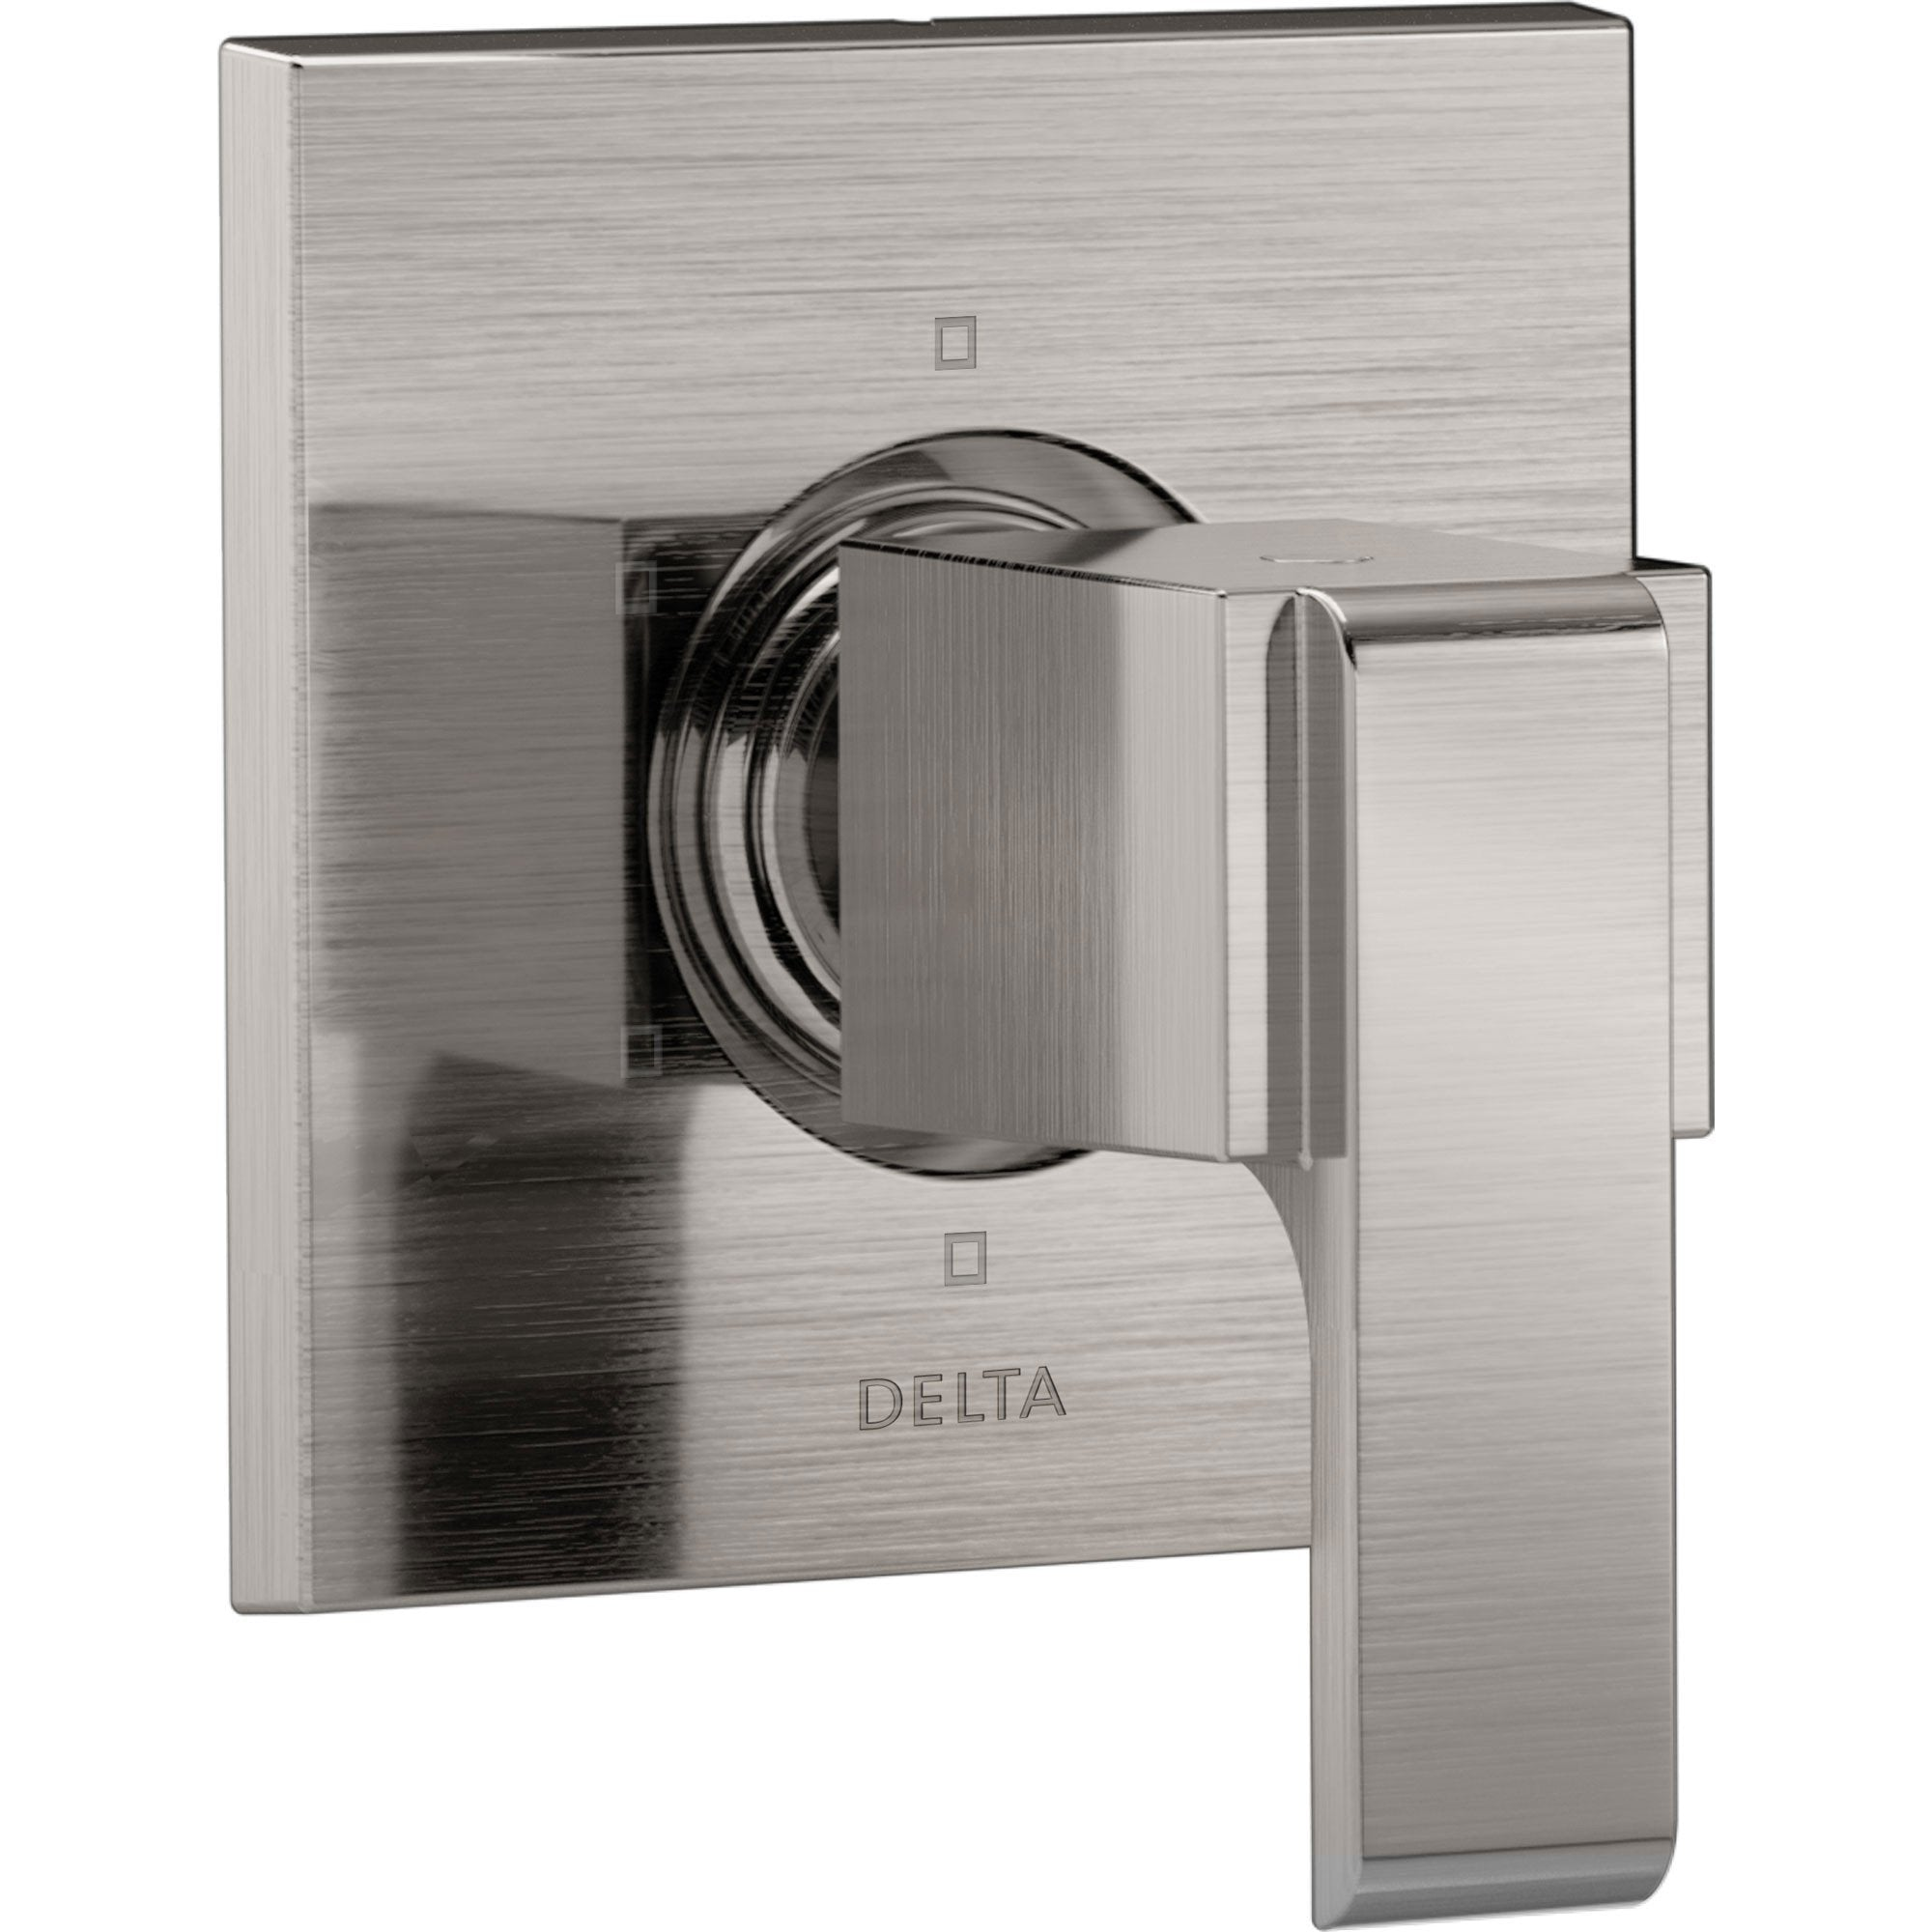 Delta Ara Modern Square Stainless Steel Finish Single Handle 6-Setting 3-Port Shower Diverter Fixture INCLUDES Rough-in Valve D1286V